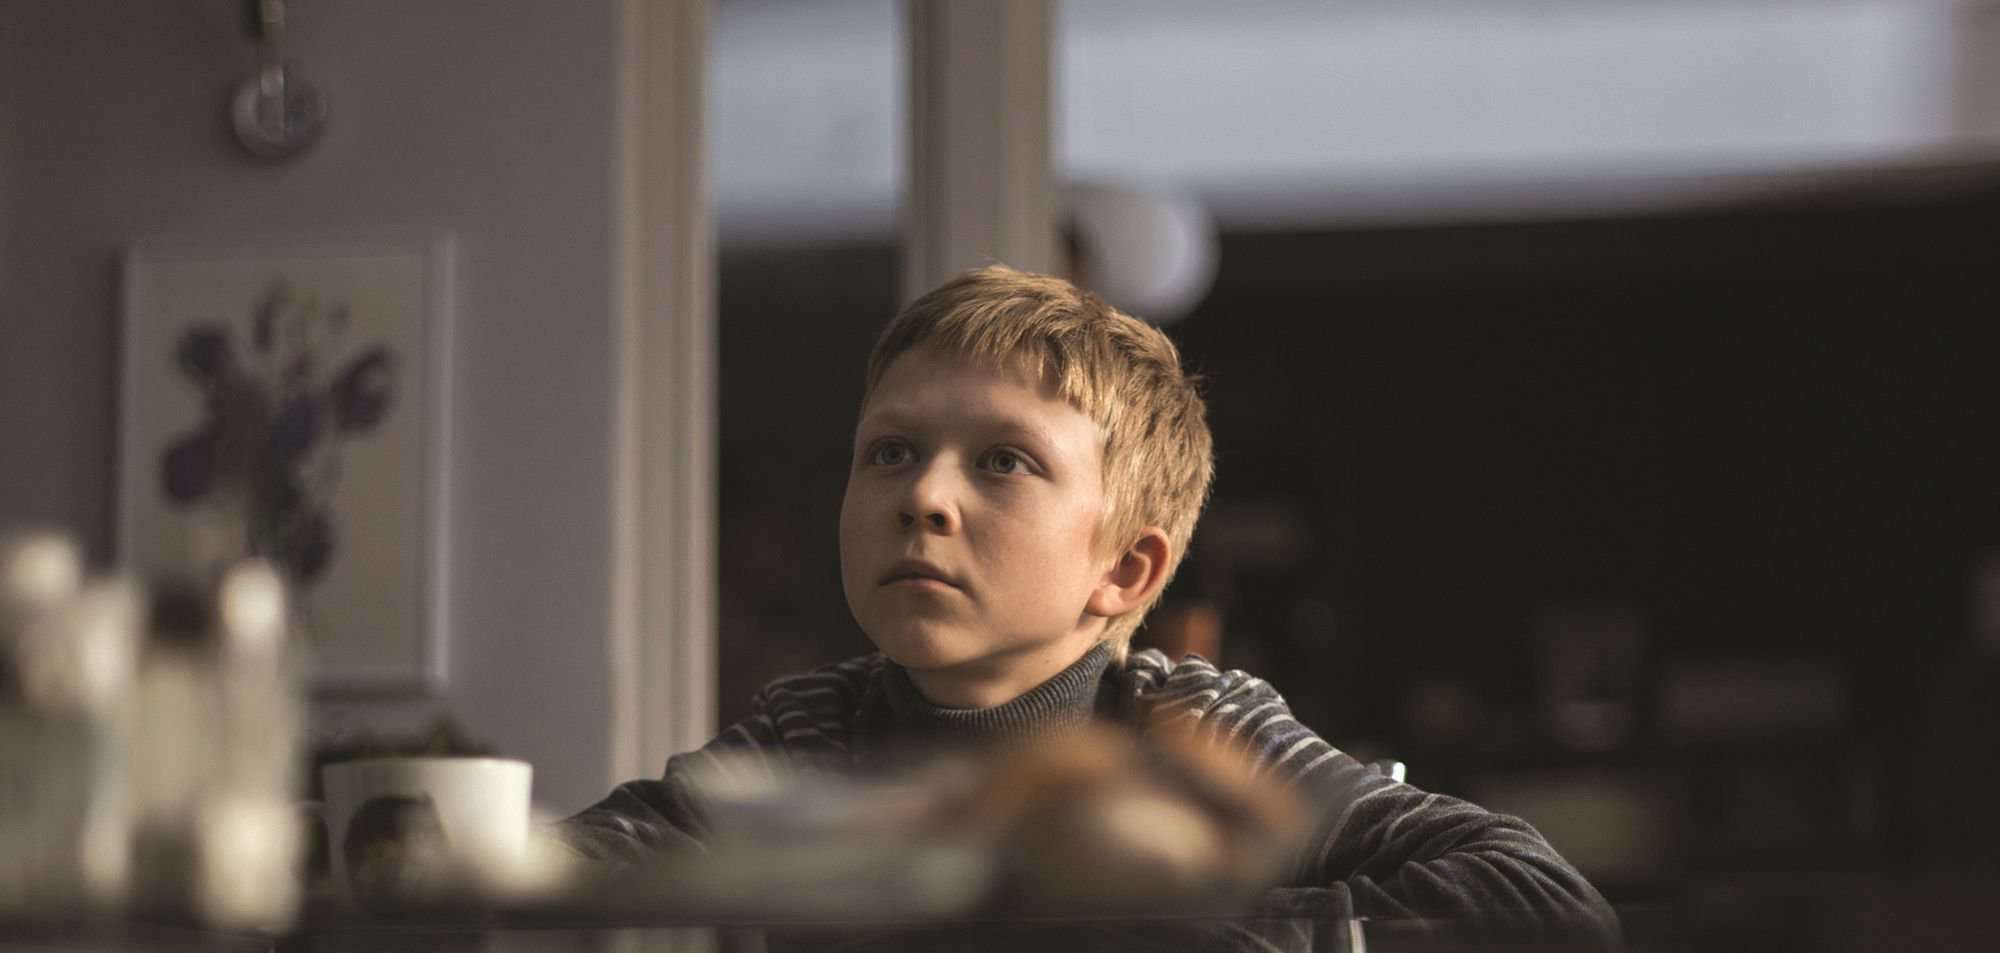 BFI London Film Festival 2017: Andrey Zvyagintsev's Loveless